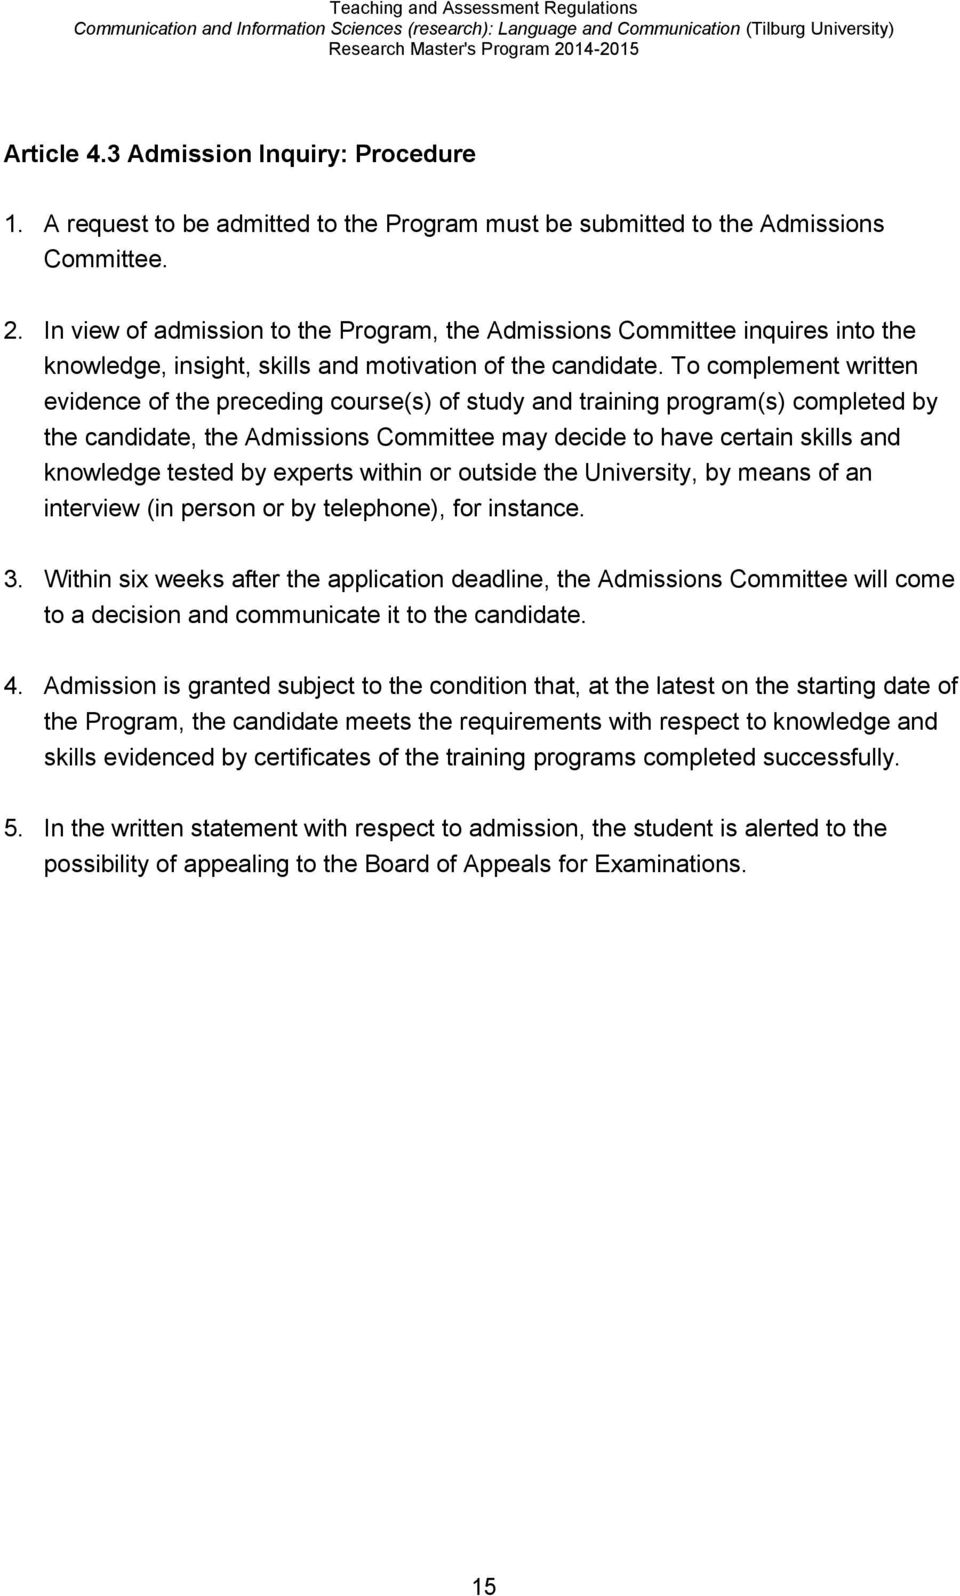 To complement written evidence of the preceding course(s) of study and training program(s) completed by the candidate, the Admissions Committee may decide to have certain skills and knowledge tested